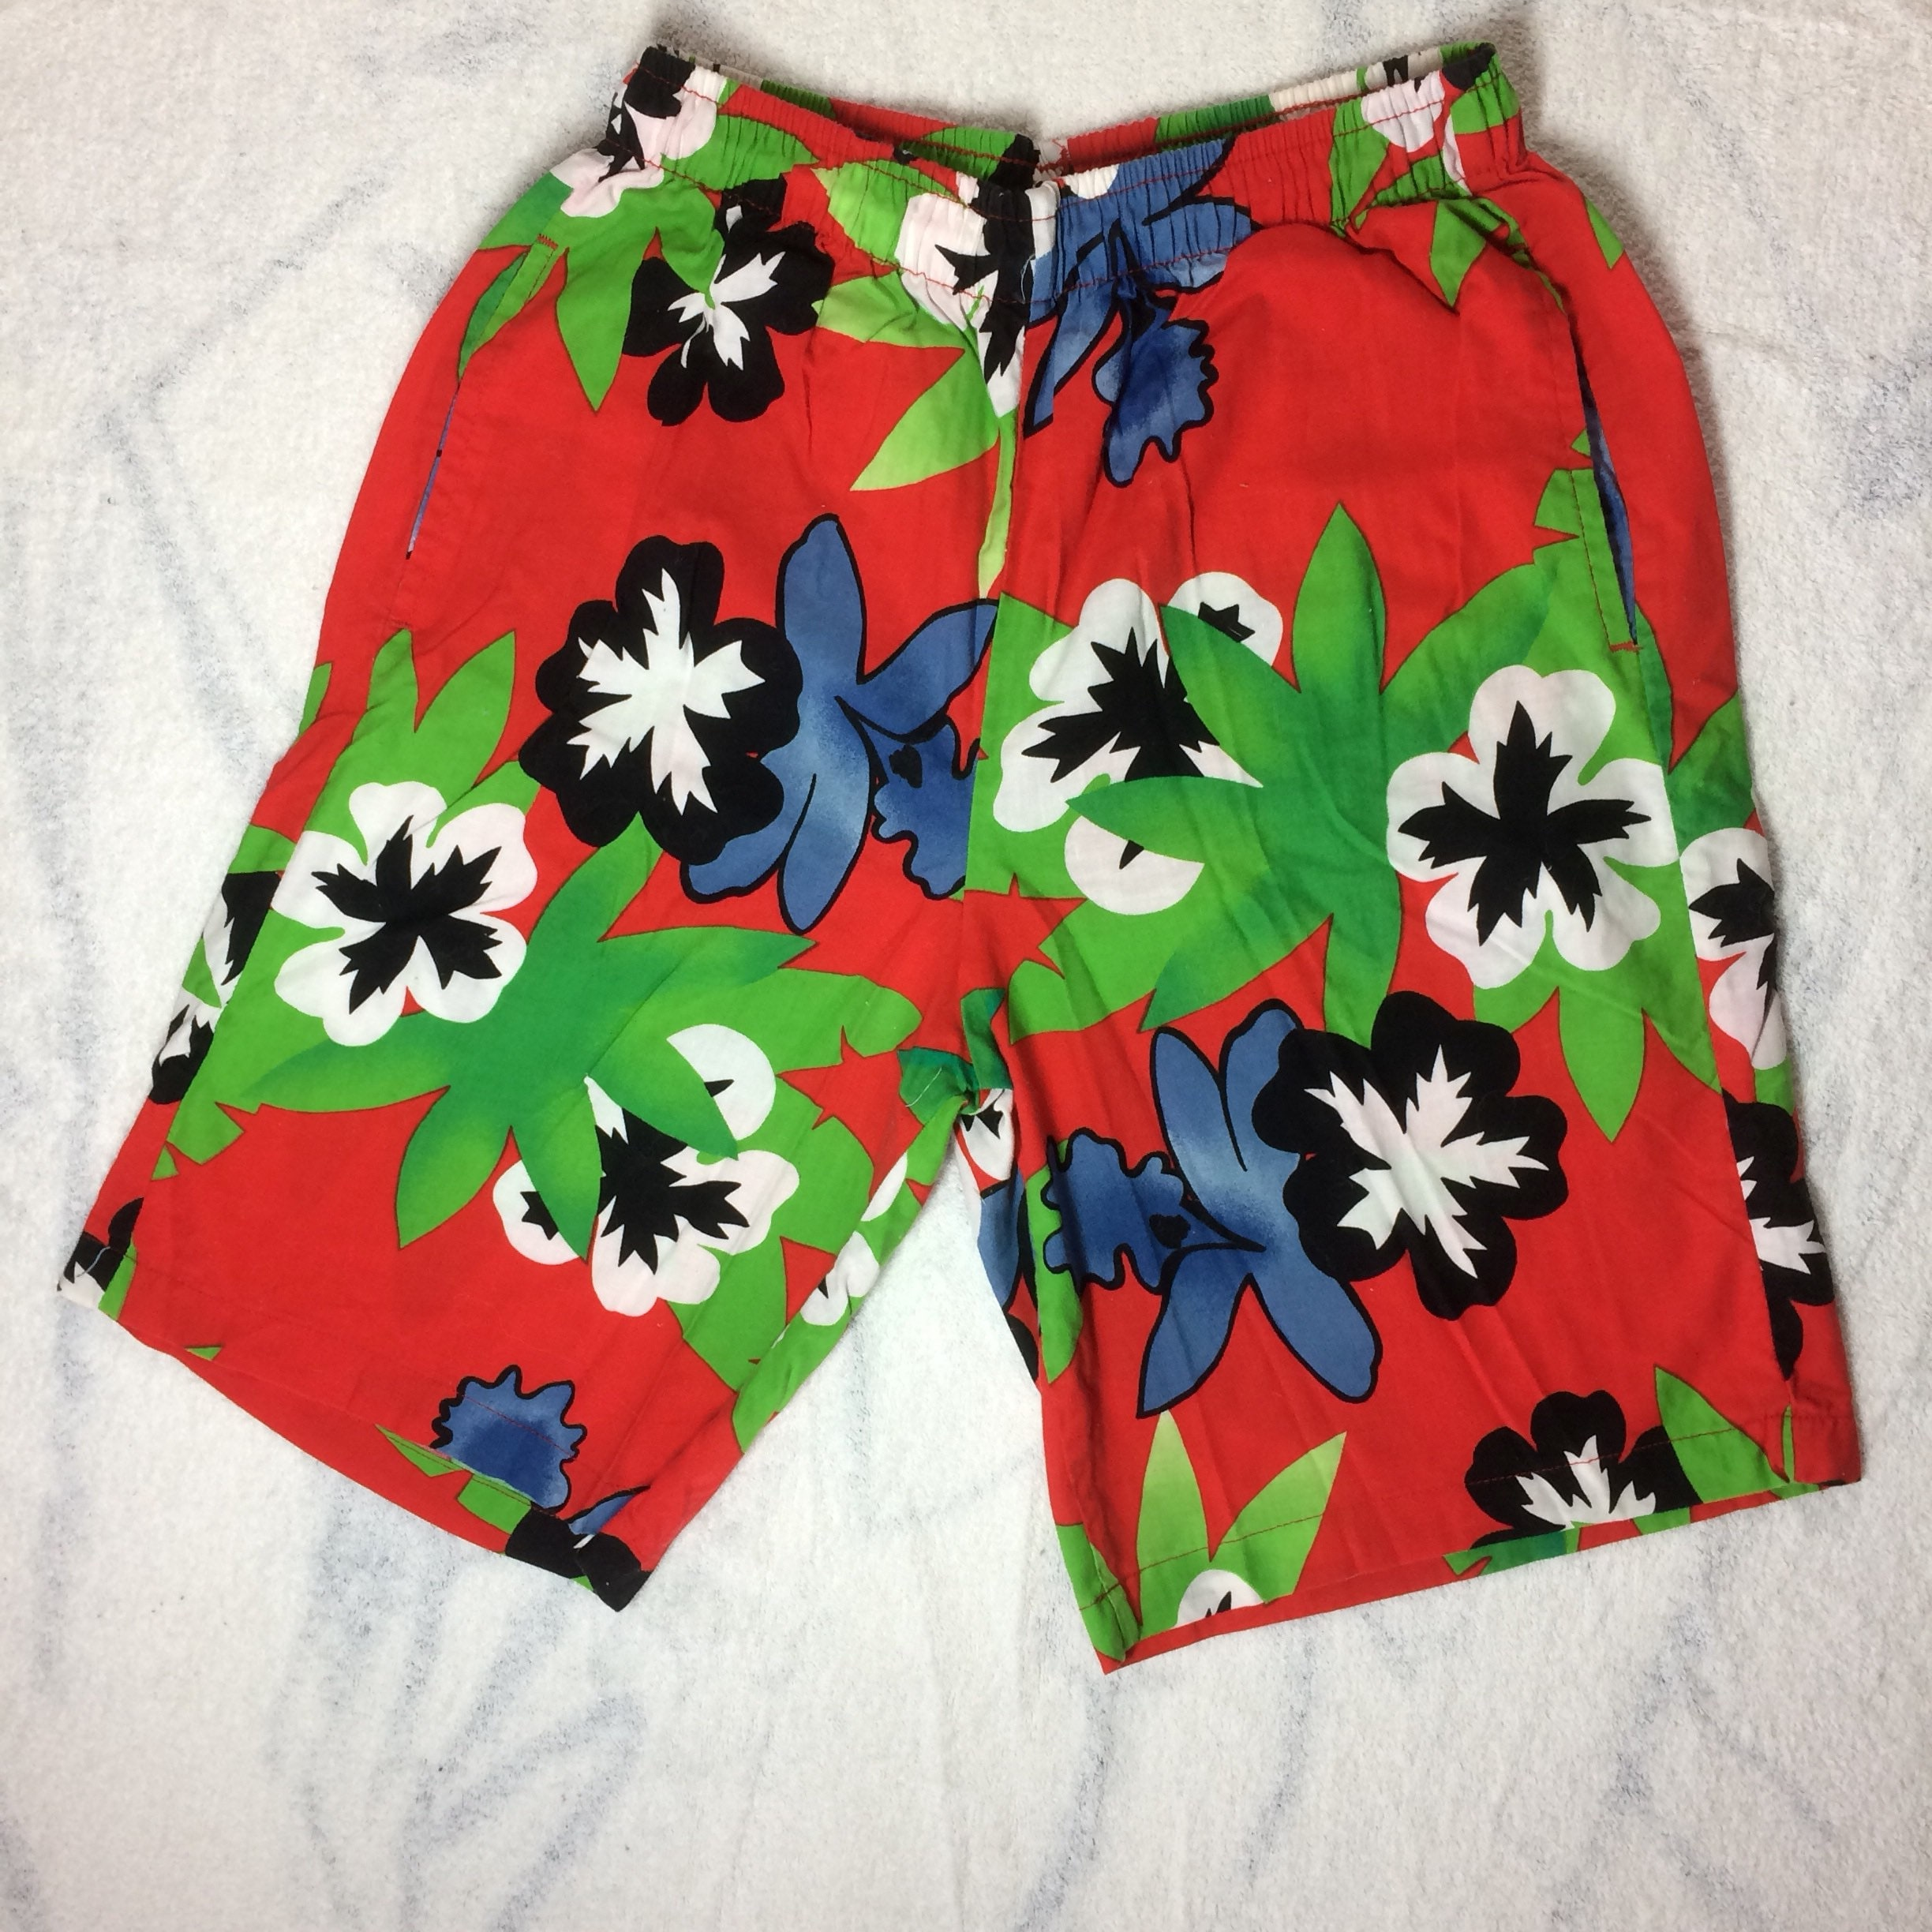 bc9b070d5b 1980's Board Shorts Original Jams Surf Line Hawaii size Small USA made bold  abstract tropical flower print red all cotton surfer beach